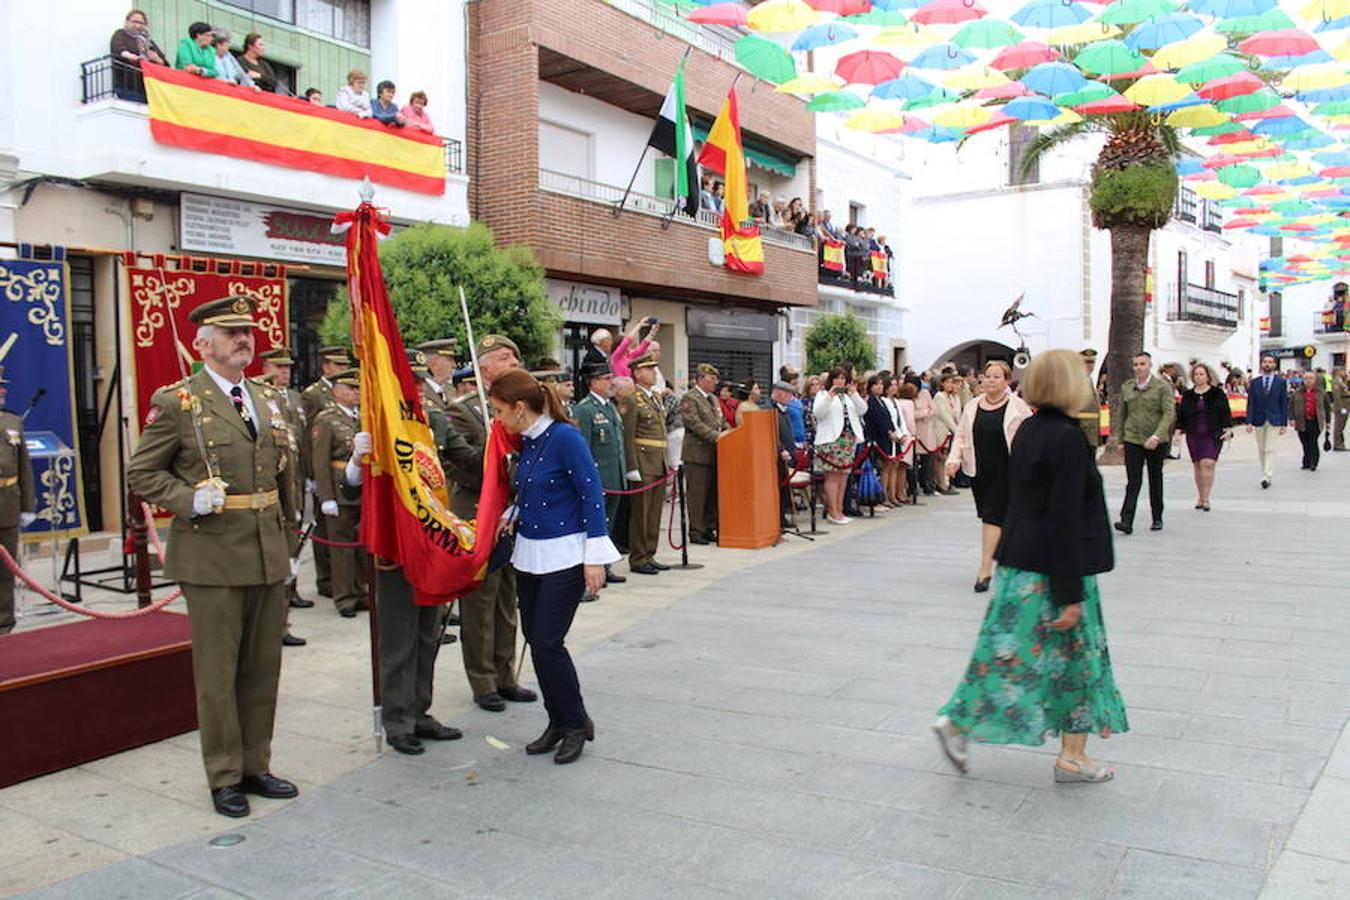 Jura de bandera en la Plaza Mayor